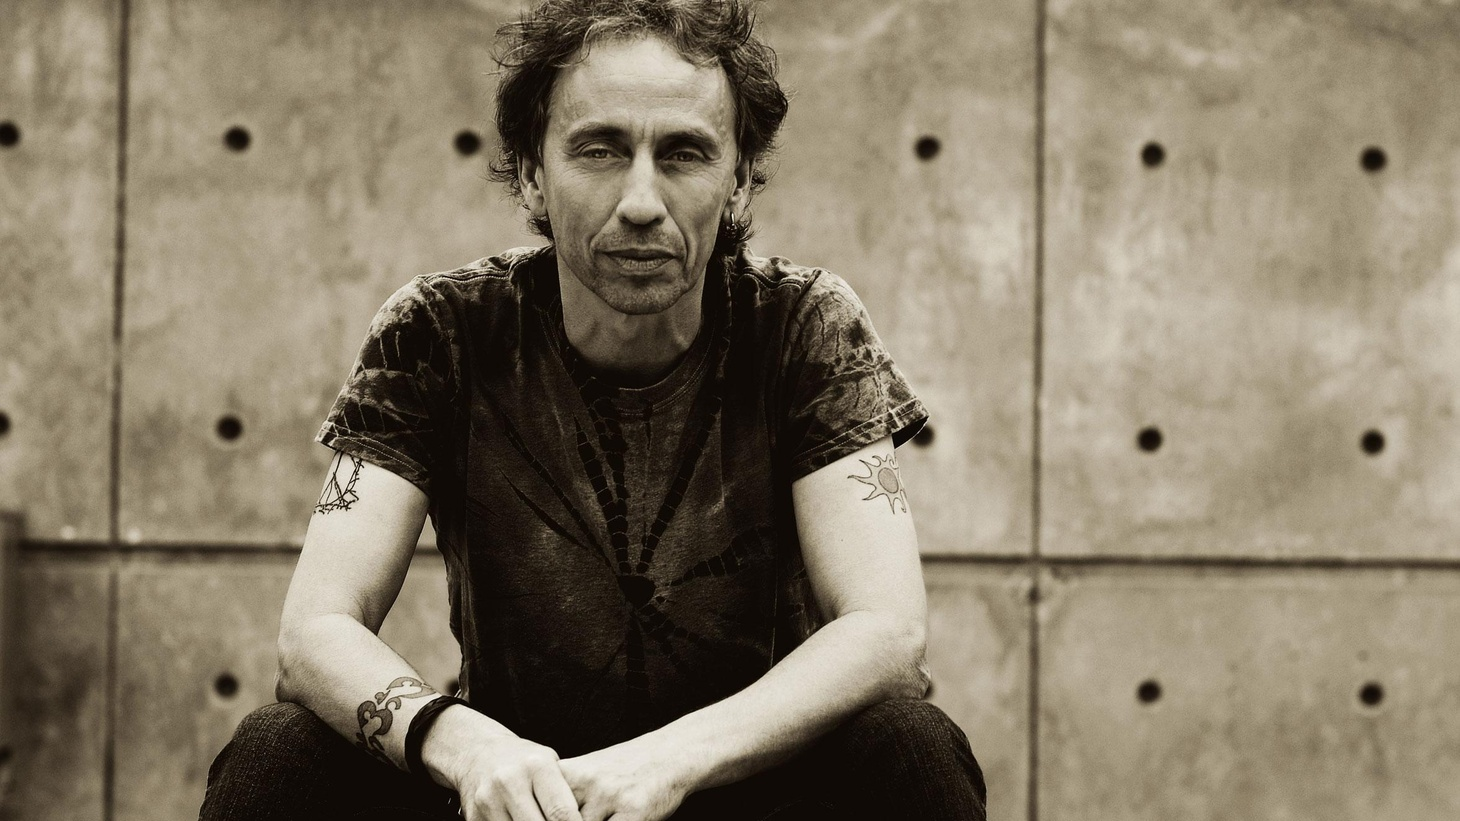 On the next edition of Sounds Eclectic, host Nic Harcourt plays new, upcoming and recent releases from Ms. Dynamite, Lyle Lovett, and the latest from Ben Harper. Plus a live in-studio performance from Tucson based collective Calexico, all this and much more on the next Sounds Eclectic.